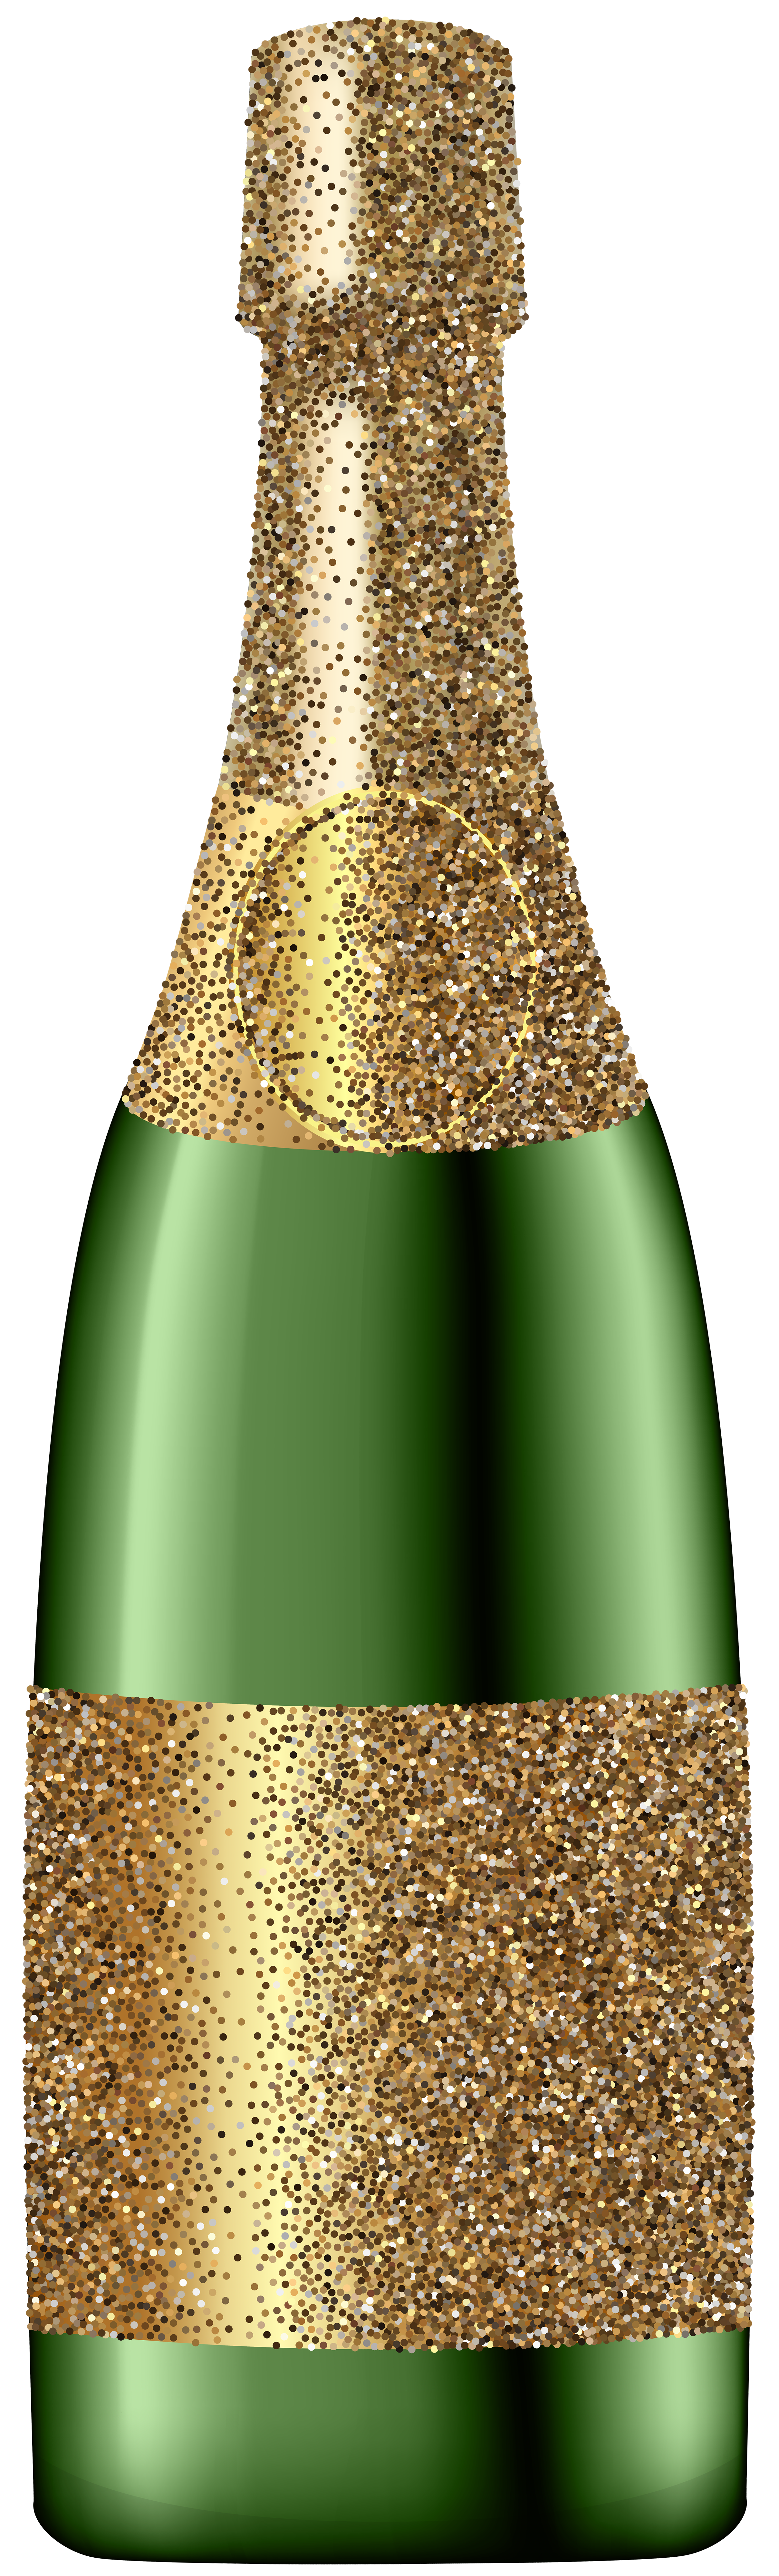 Glitter champagne bottle png. Champaign clipart christmas